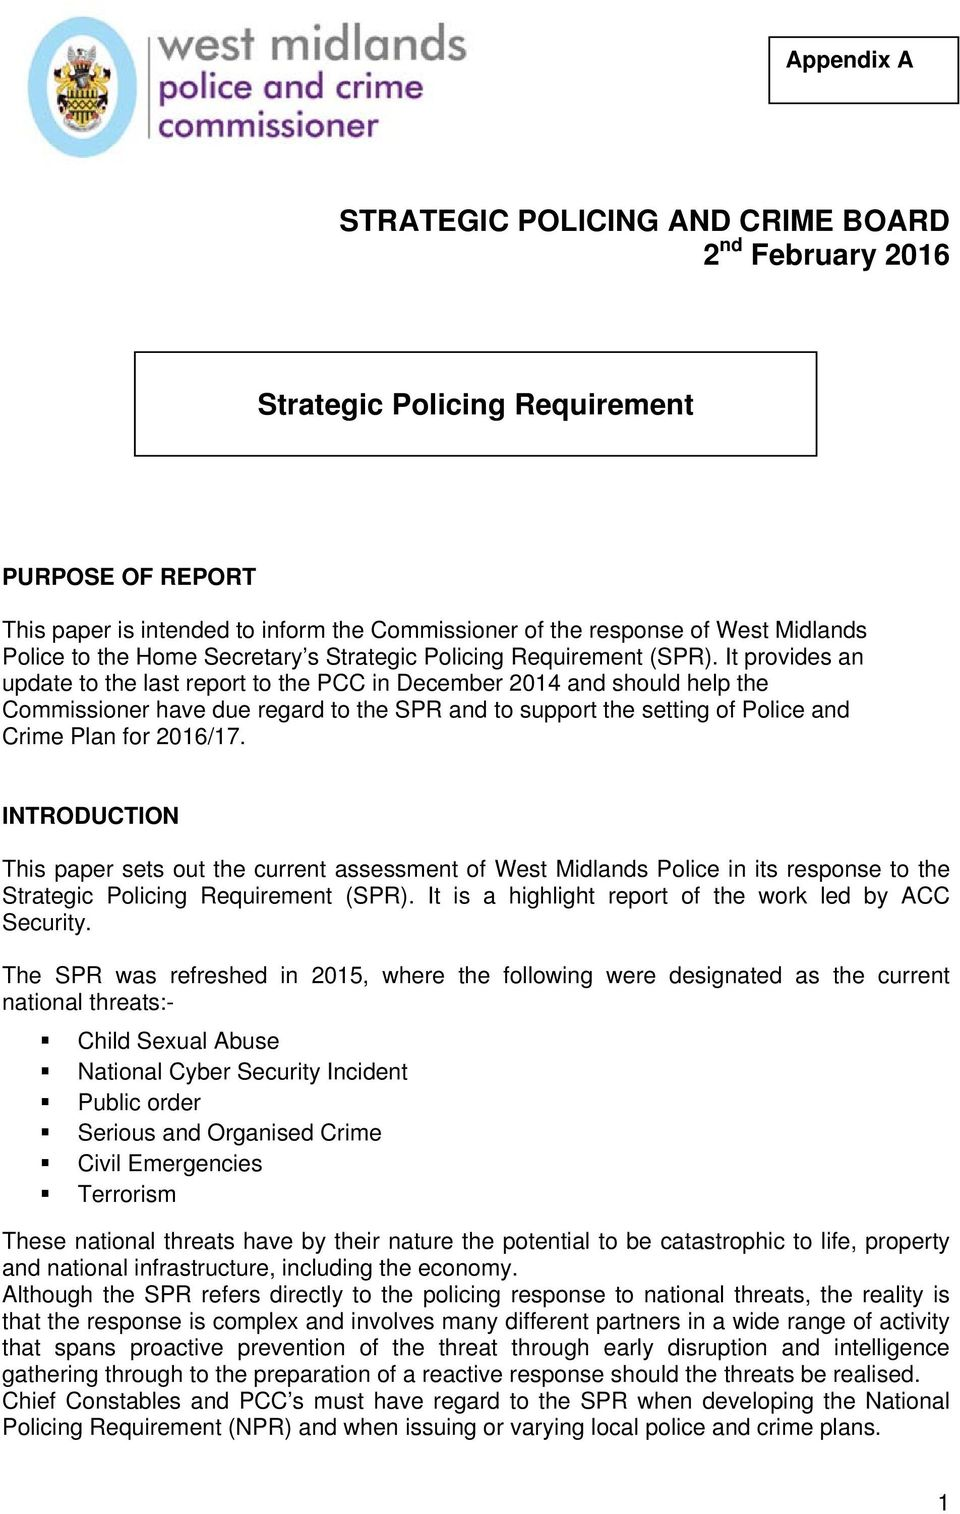 It provides an update to the last report to the PCC in December 2014 and should help the Commissioner have due regard to the SPR and to support the setting of Police and Crime Plan for 2016/17.